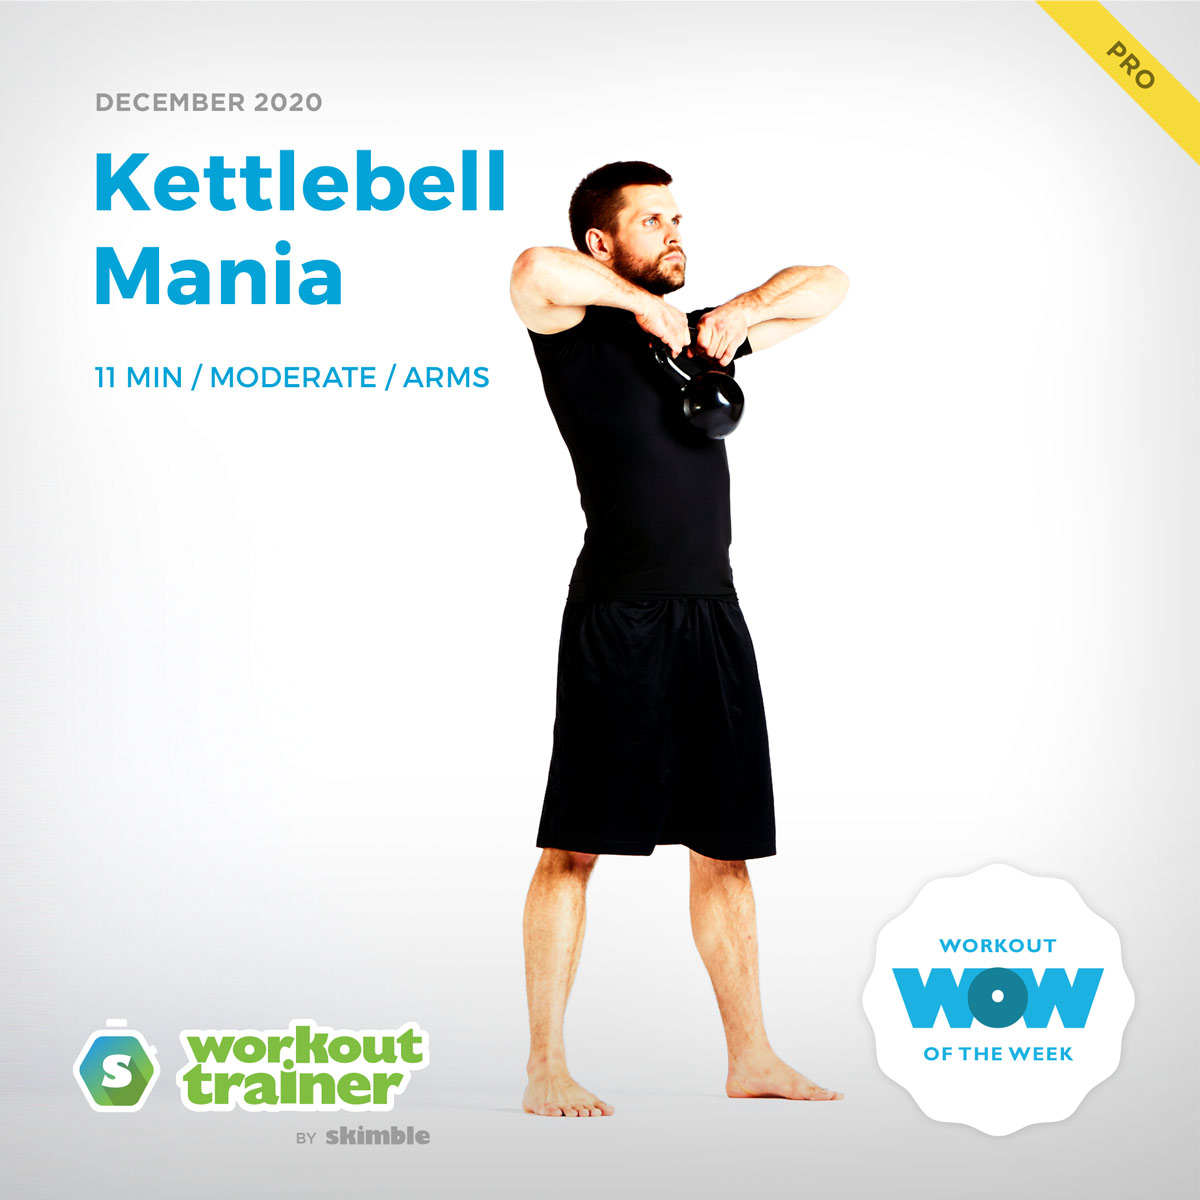 Male Personal Trainer performing Kettlebell Upright Rows